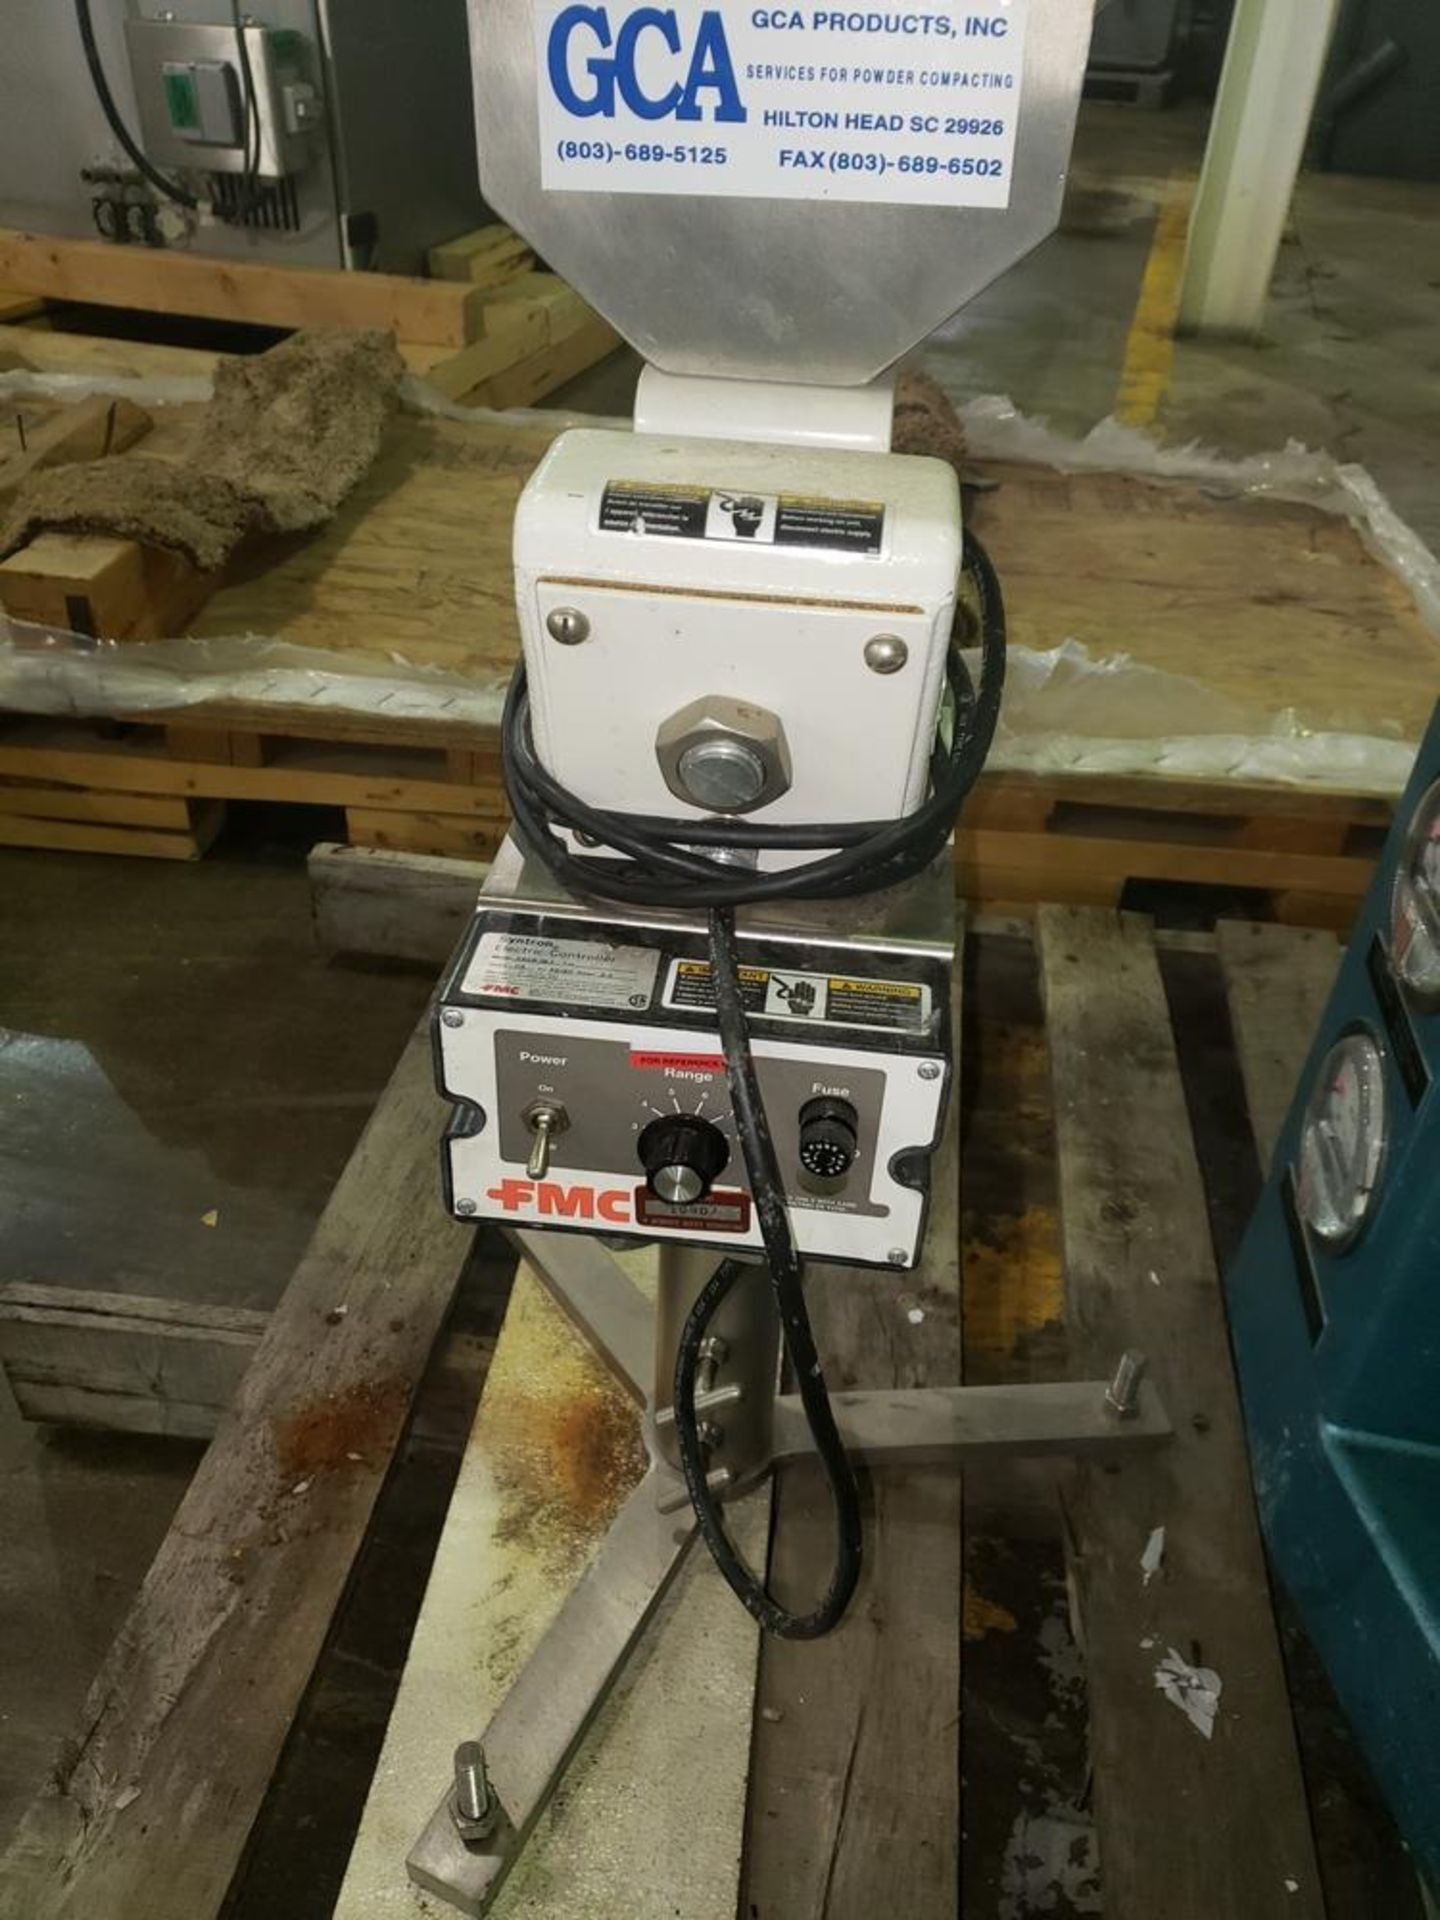 FMC Syntron magnetic feeder, model CSCR-1B-1, 115 volt, 50/60 hz, serial# P30596. - Image 4 of 6